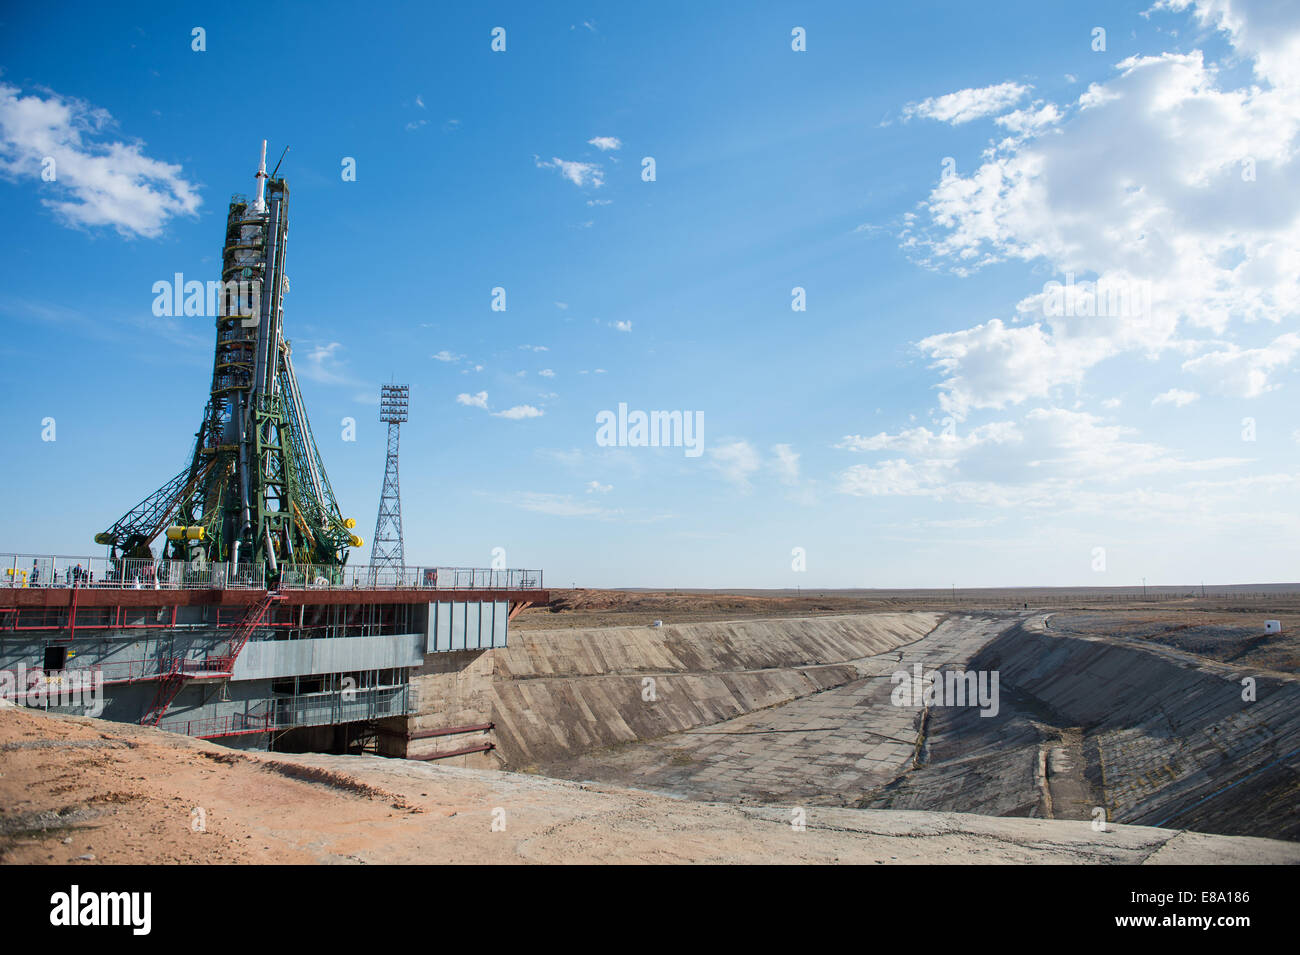 The Soyuz TMA-14M spacecraft is seen after the gantry arms closed securing the rocket in the veritcal position at - Stock Image